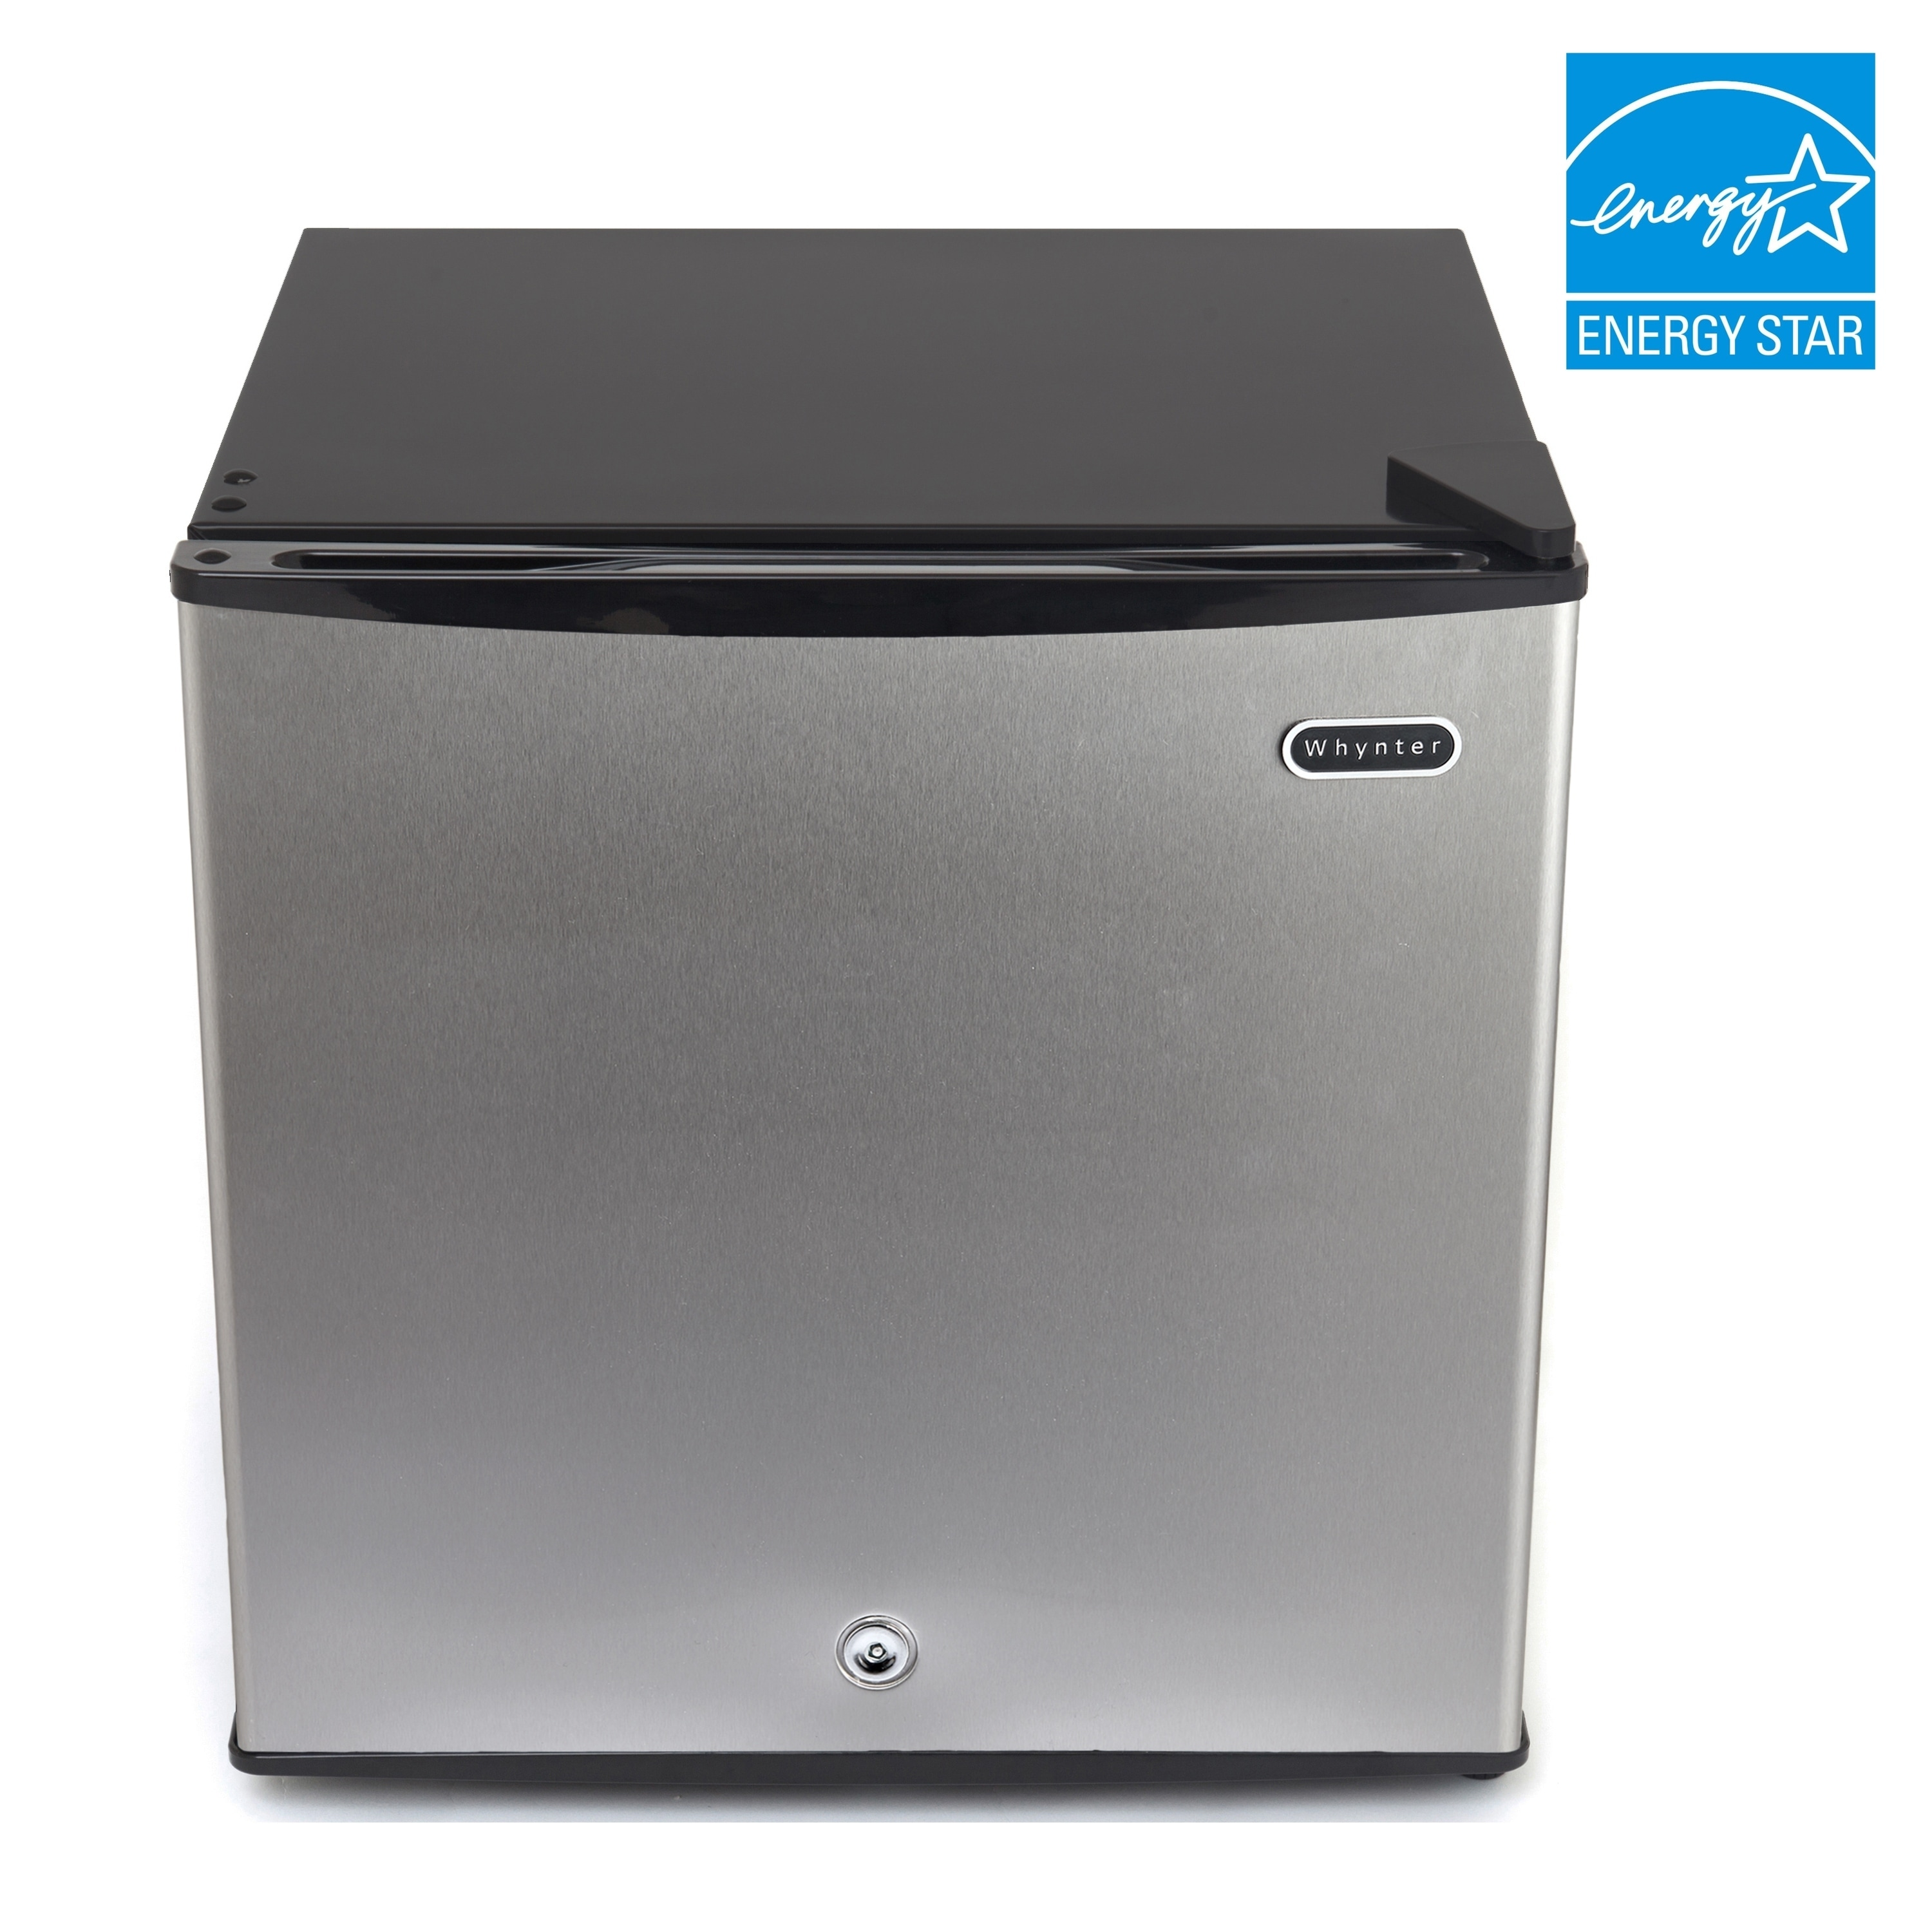 CUF-112SS Whynter 1.1 cu. ft. Energy Star Upright Freezer...